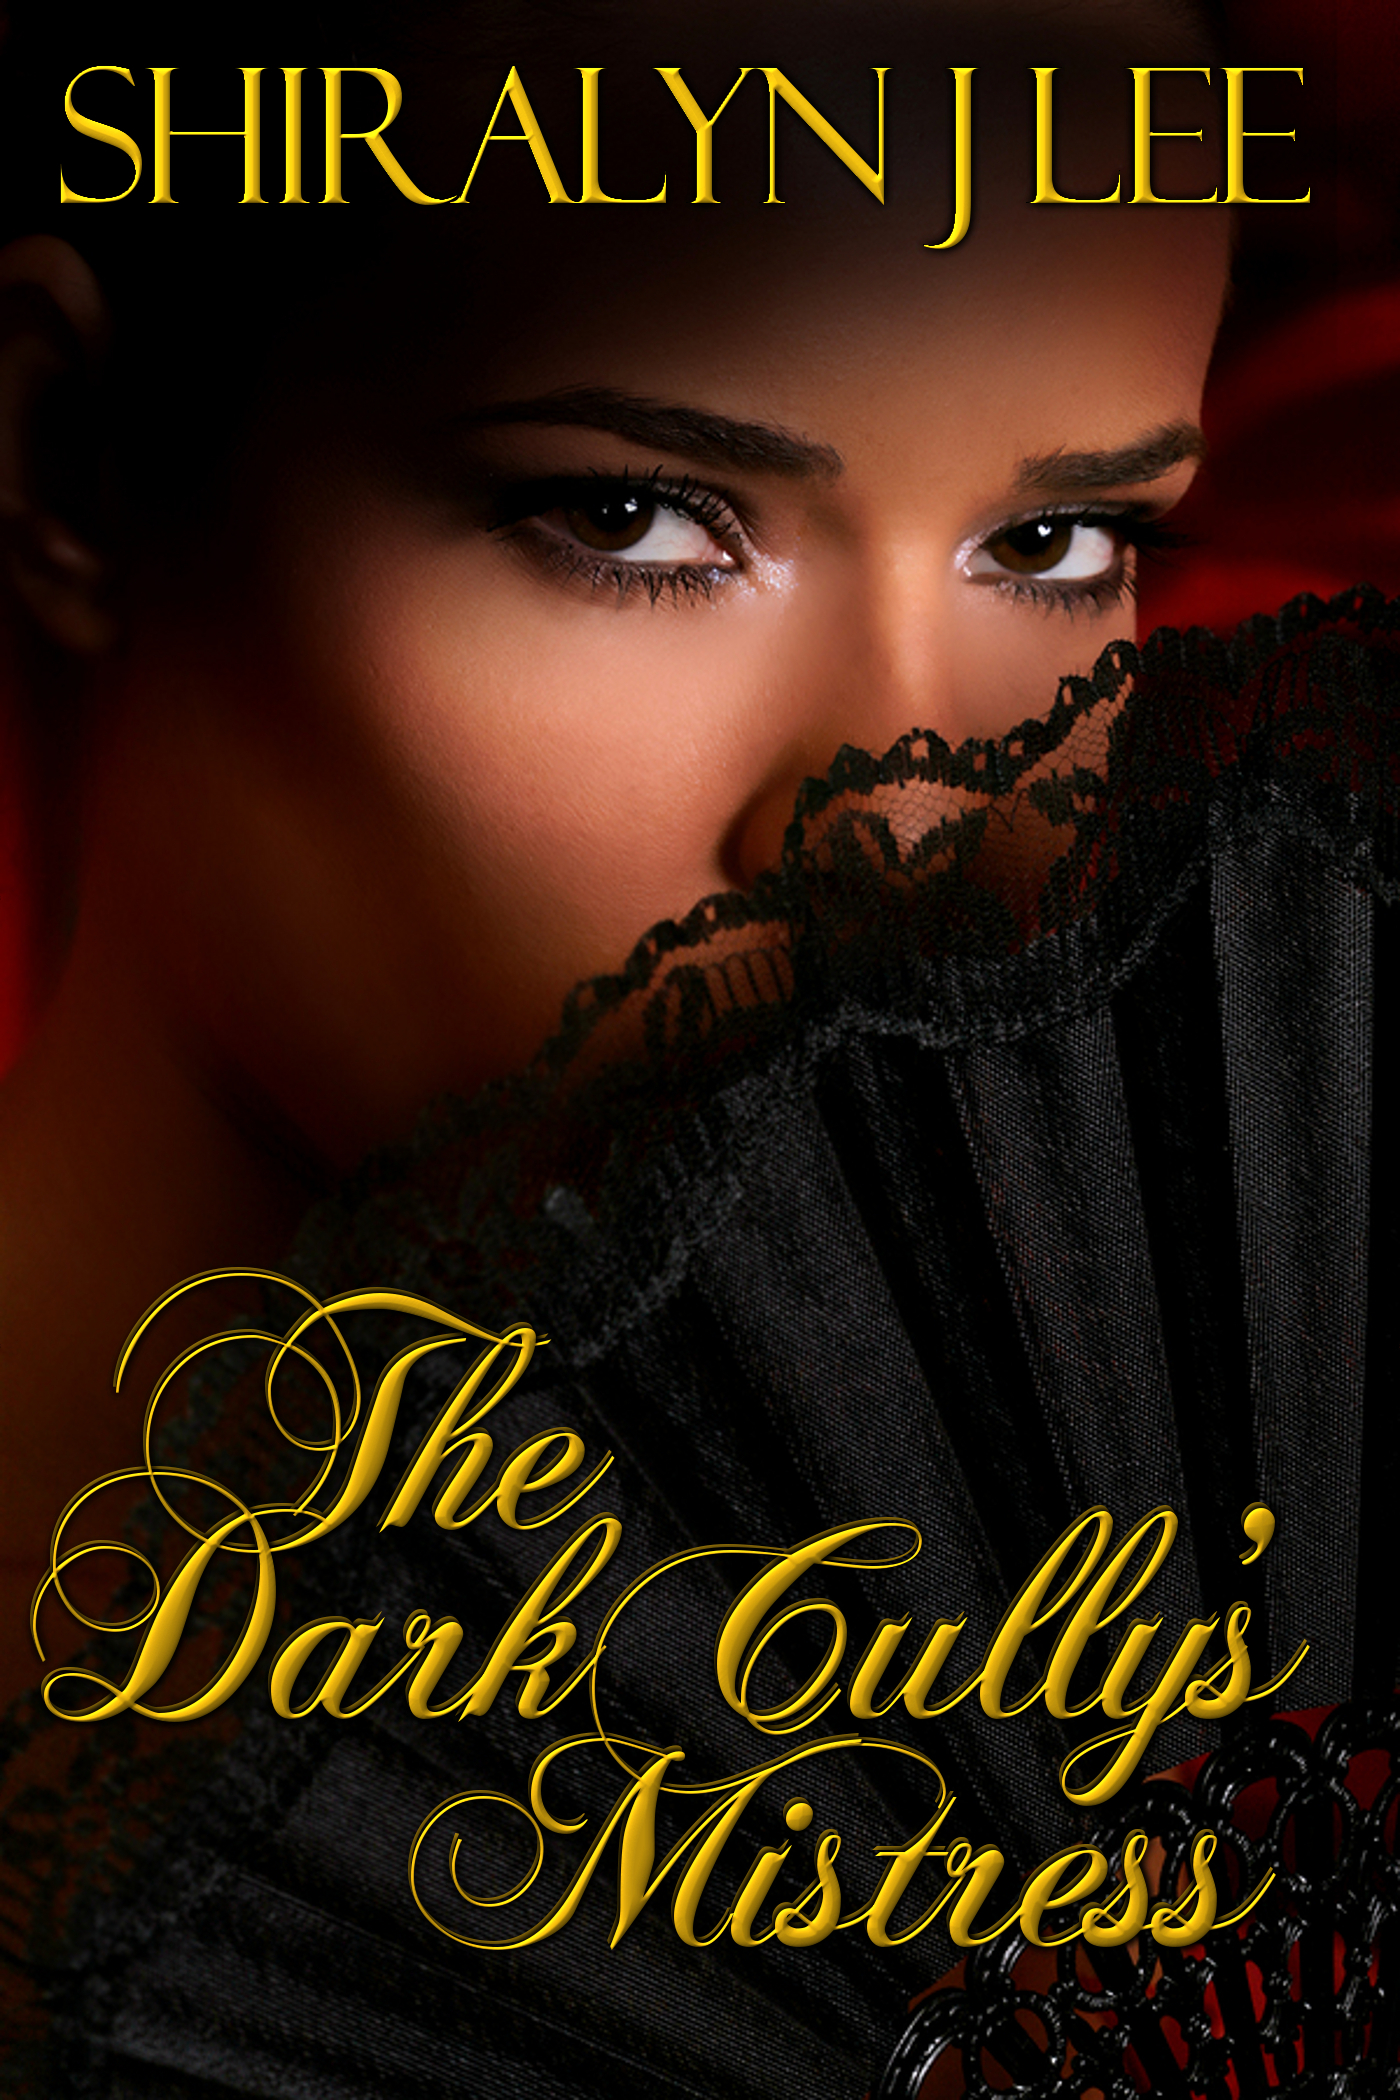 The Dark Cully's Mistress